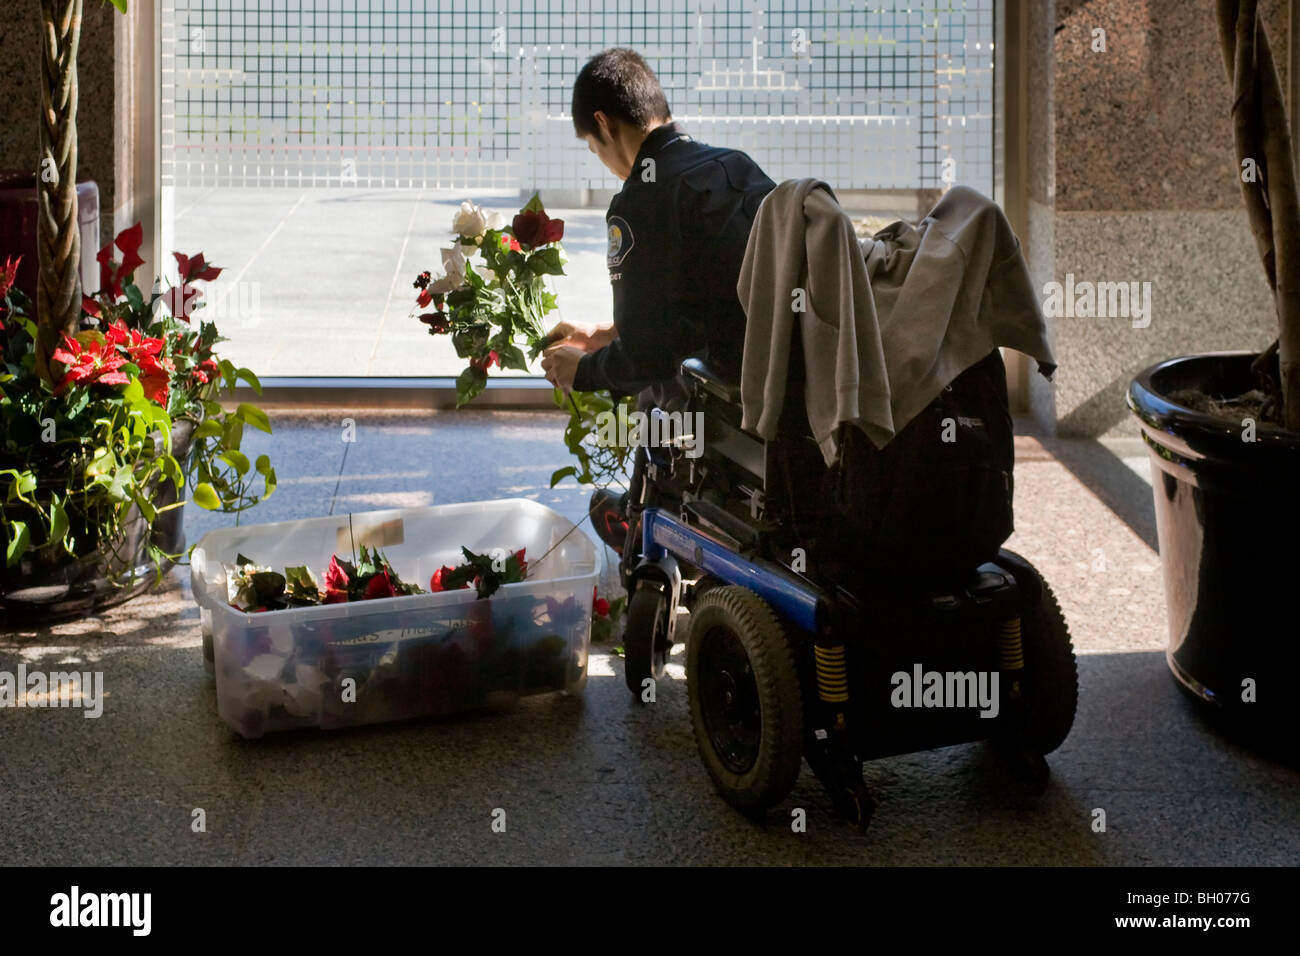 Confined to a wheelchair, a handicapped police cadet arranges Christmas flowers at a Southern California police - Stock Image